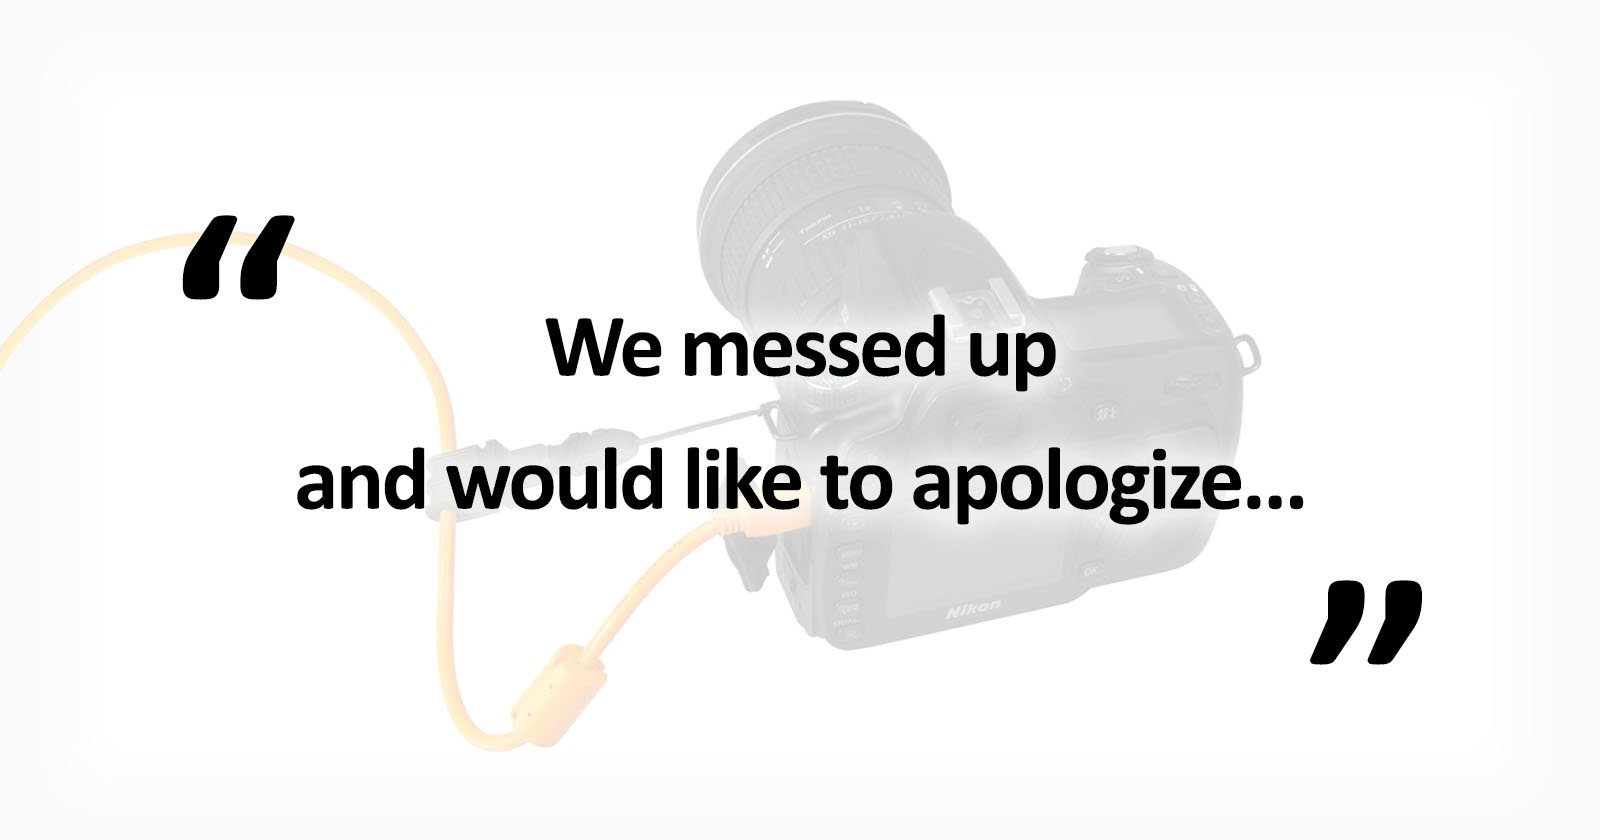 THIS is How You Apologize for Using a Photo Without Permission as a Brand